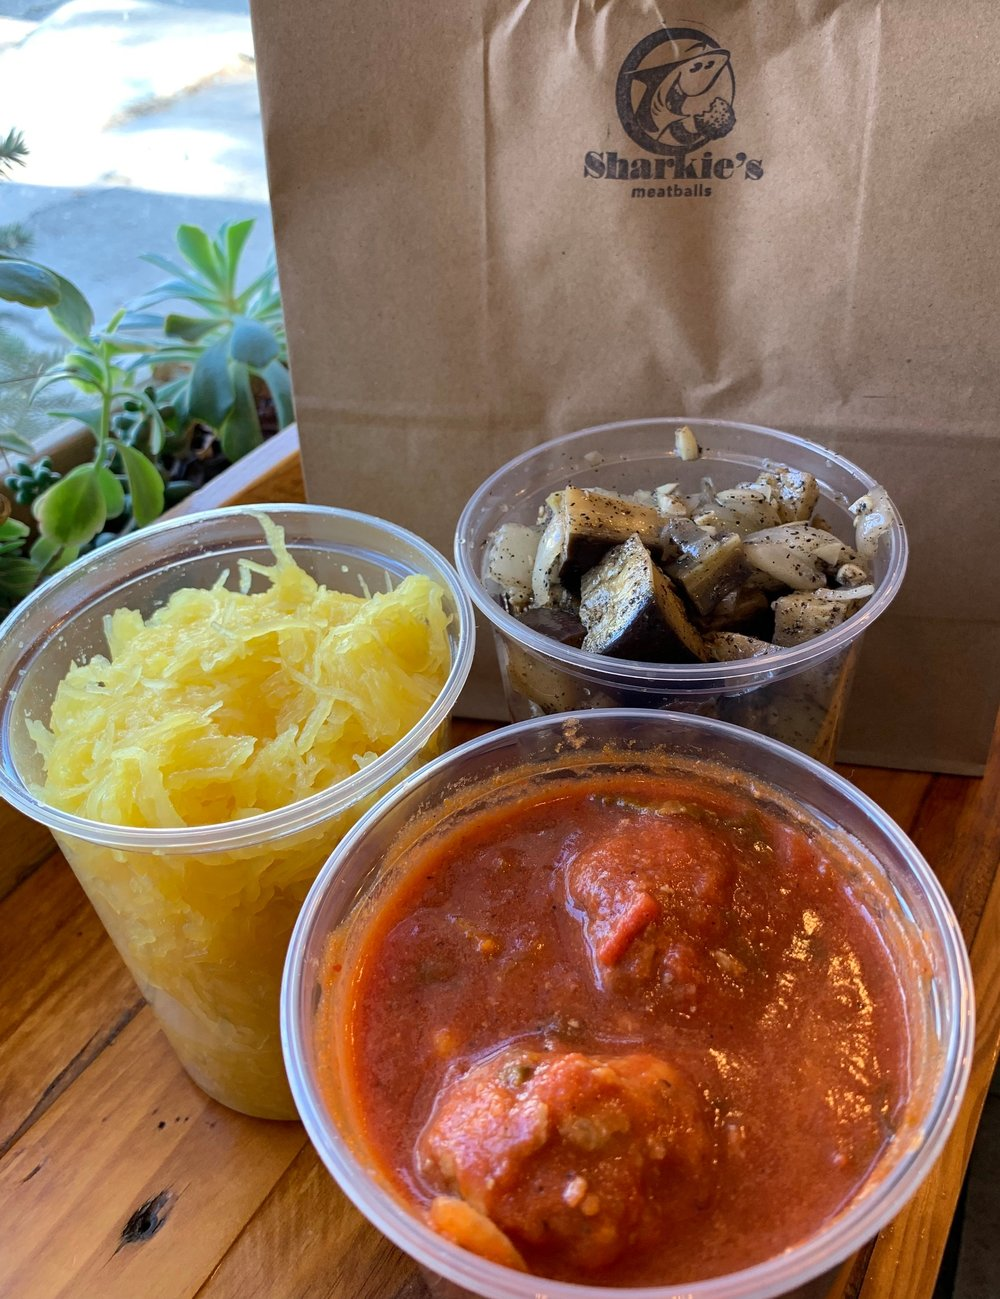 Cold food to take home! - All of our meatballs and veggies are sold cold as well for your convenience.